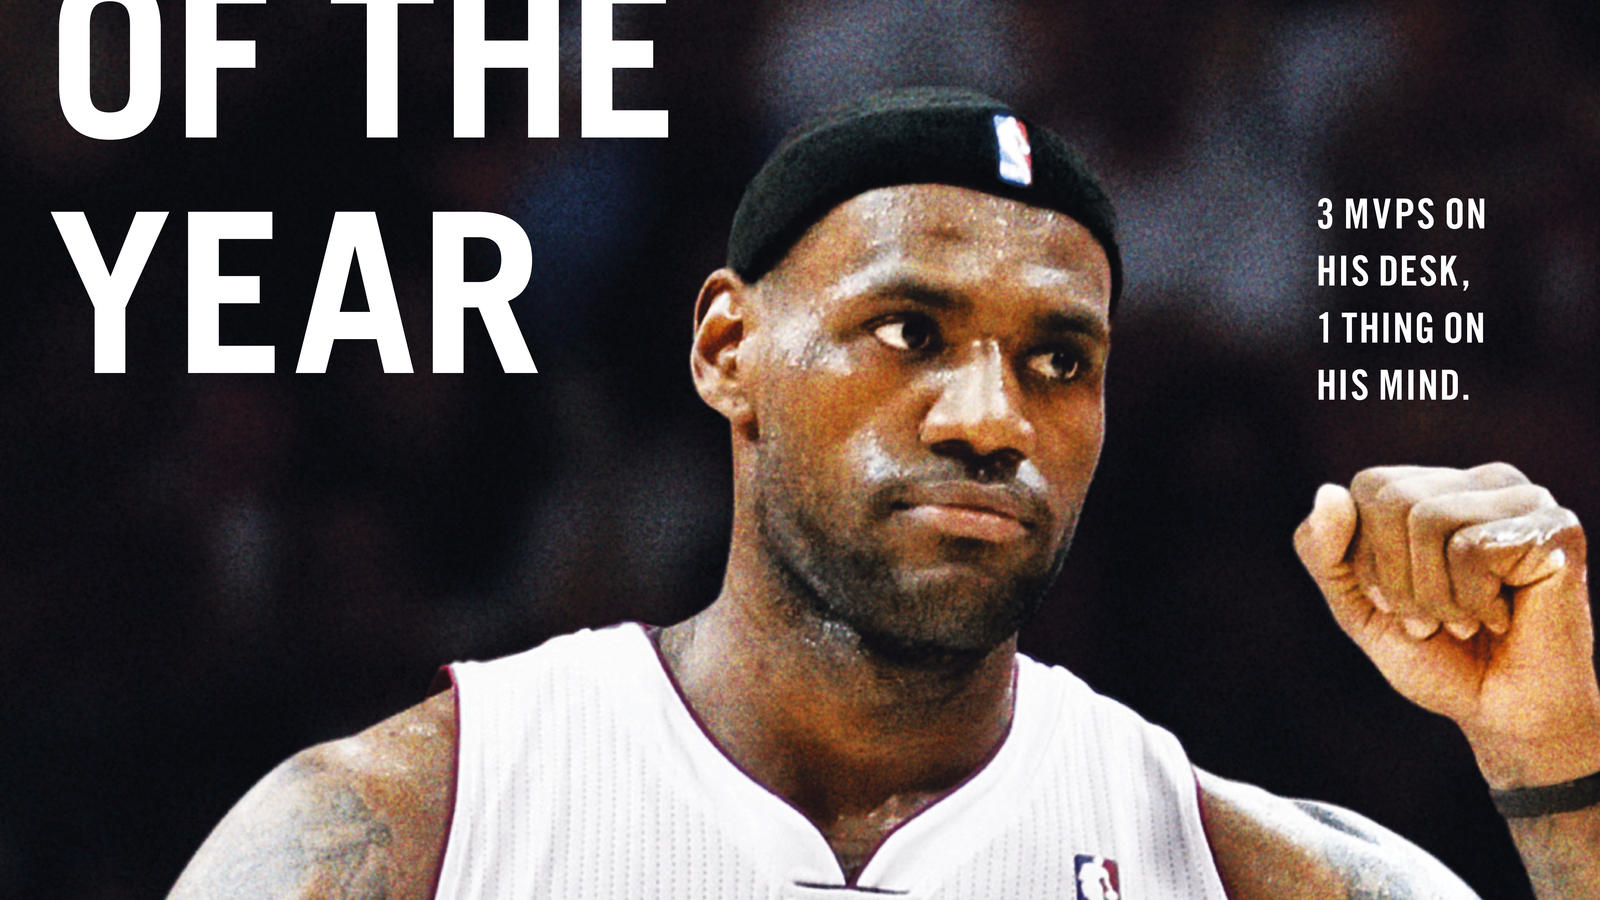 LeBron James MVP Employee of the Year Ad